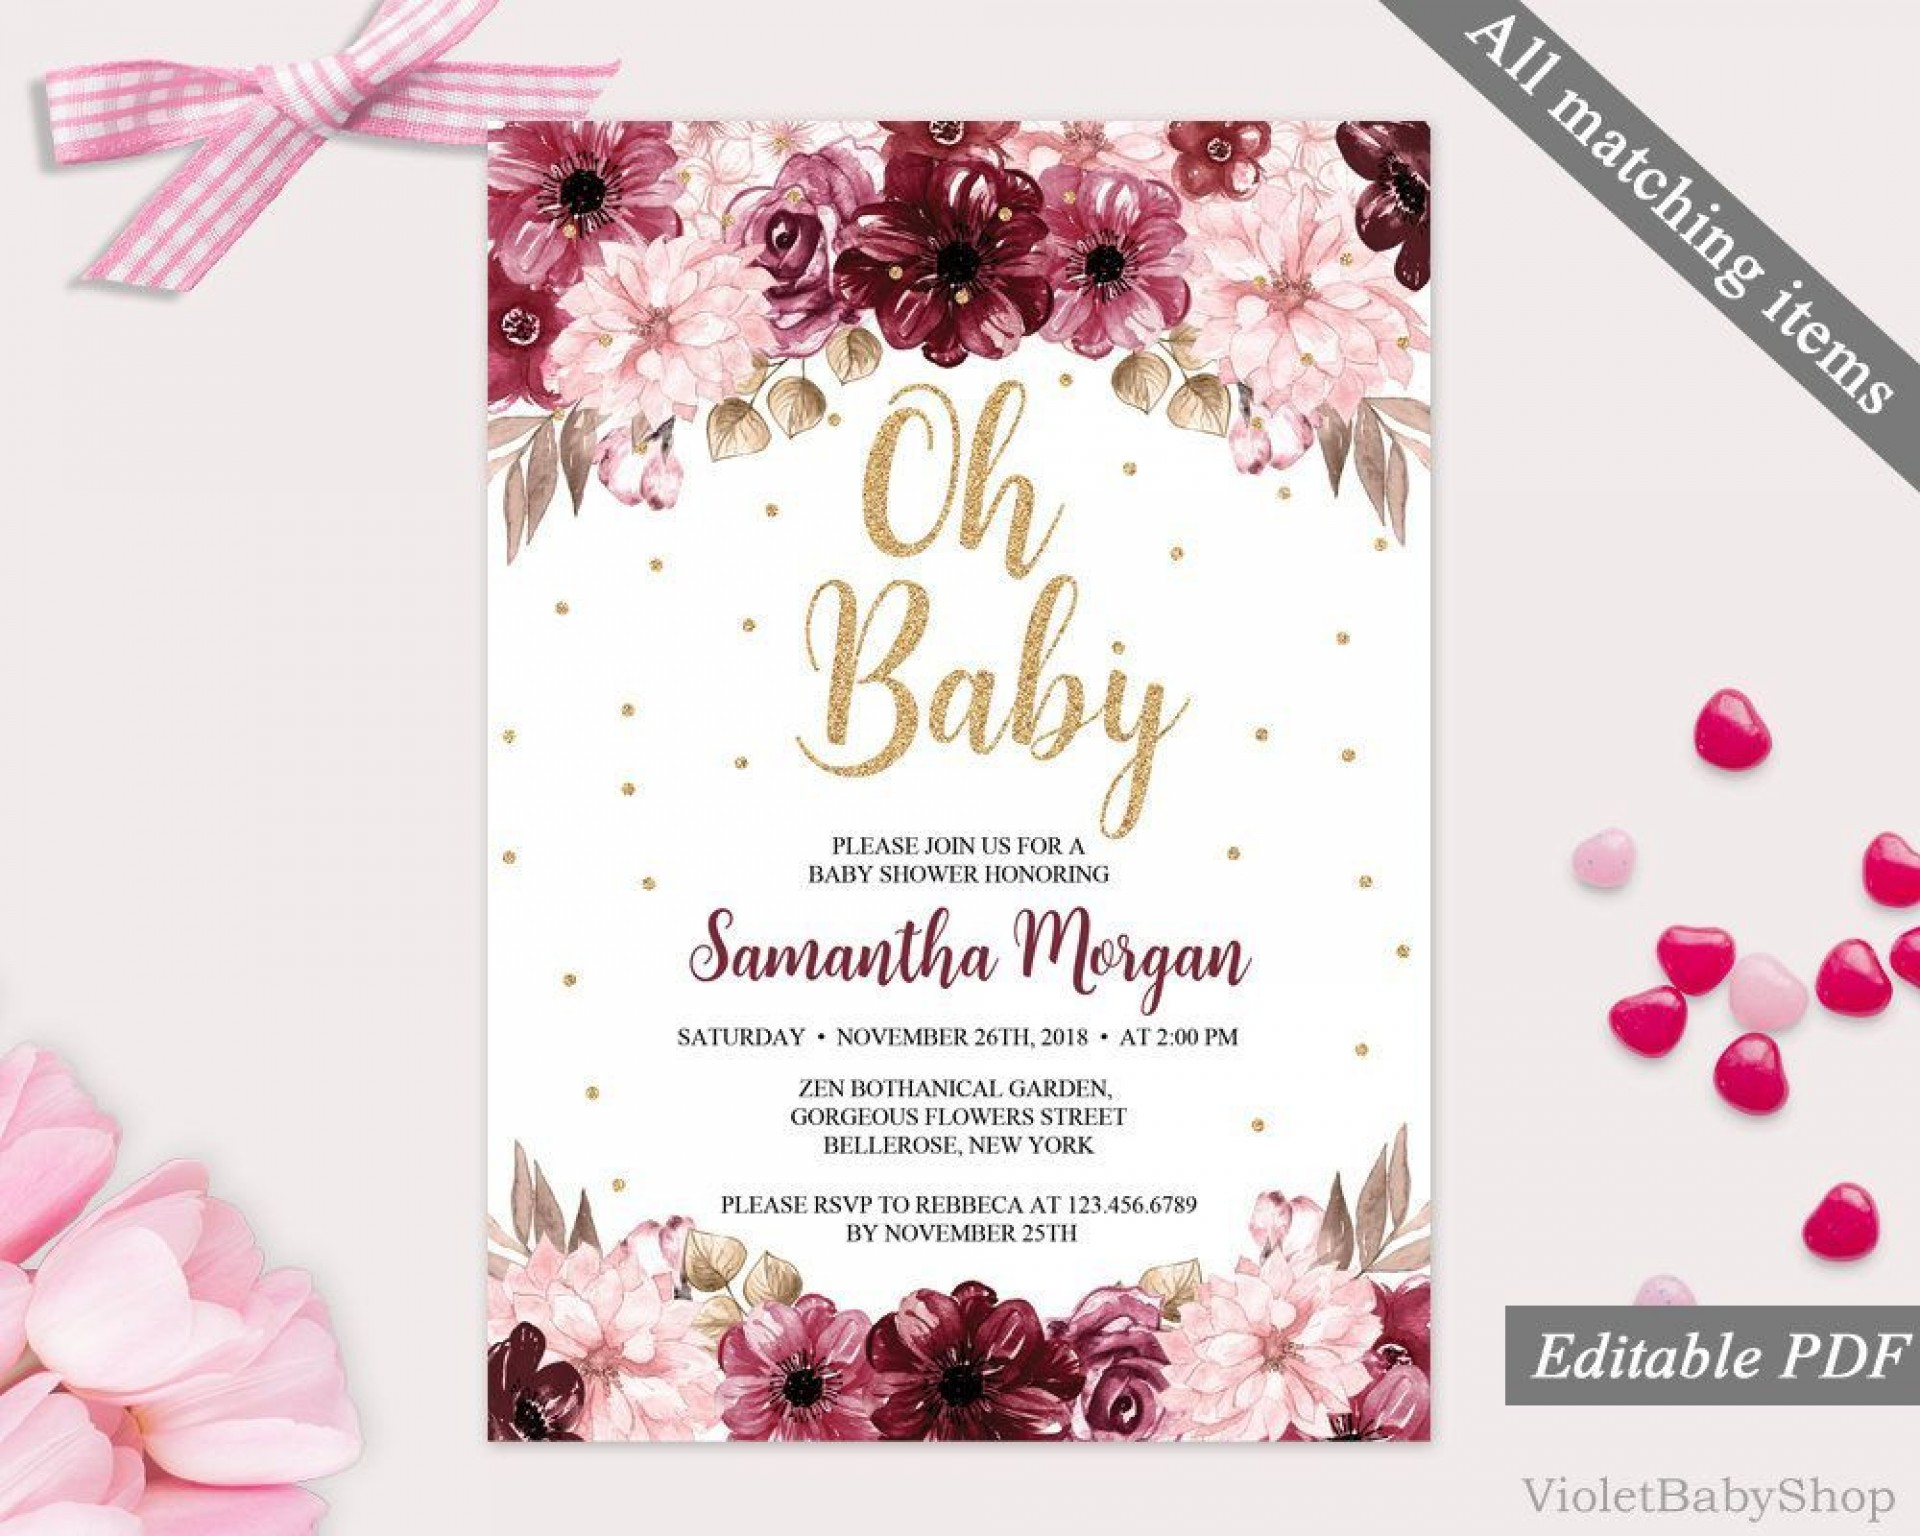 002 Archaicawful Baby Shower Invitation Template Editable Inspiration  Free Surprise In Gujarati Twin1920